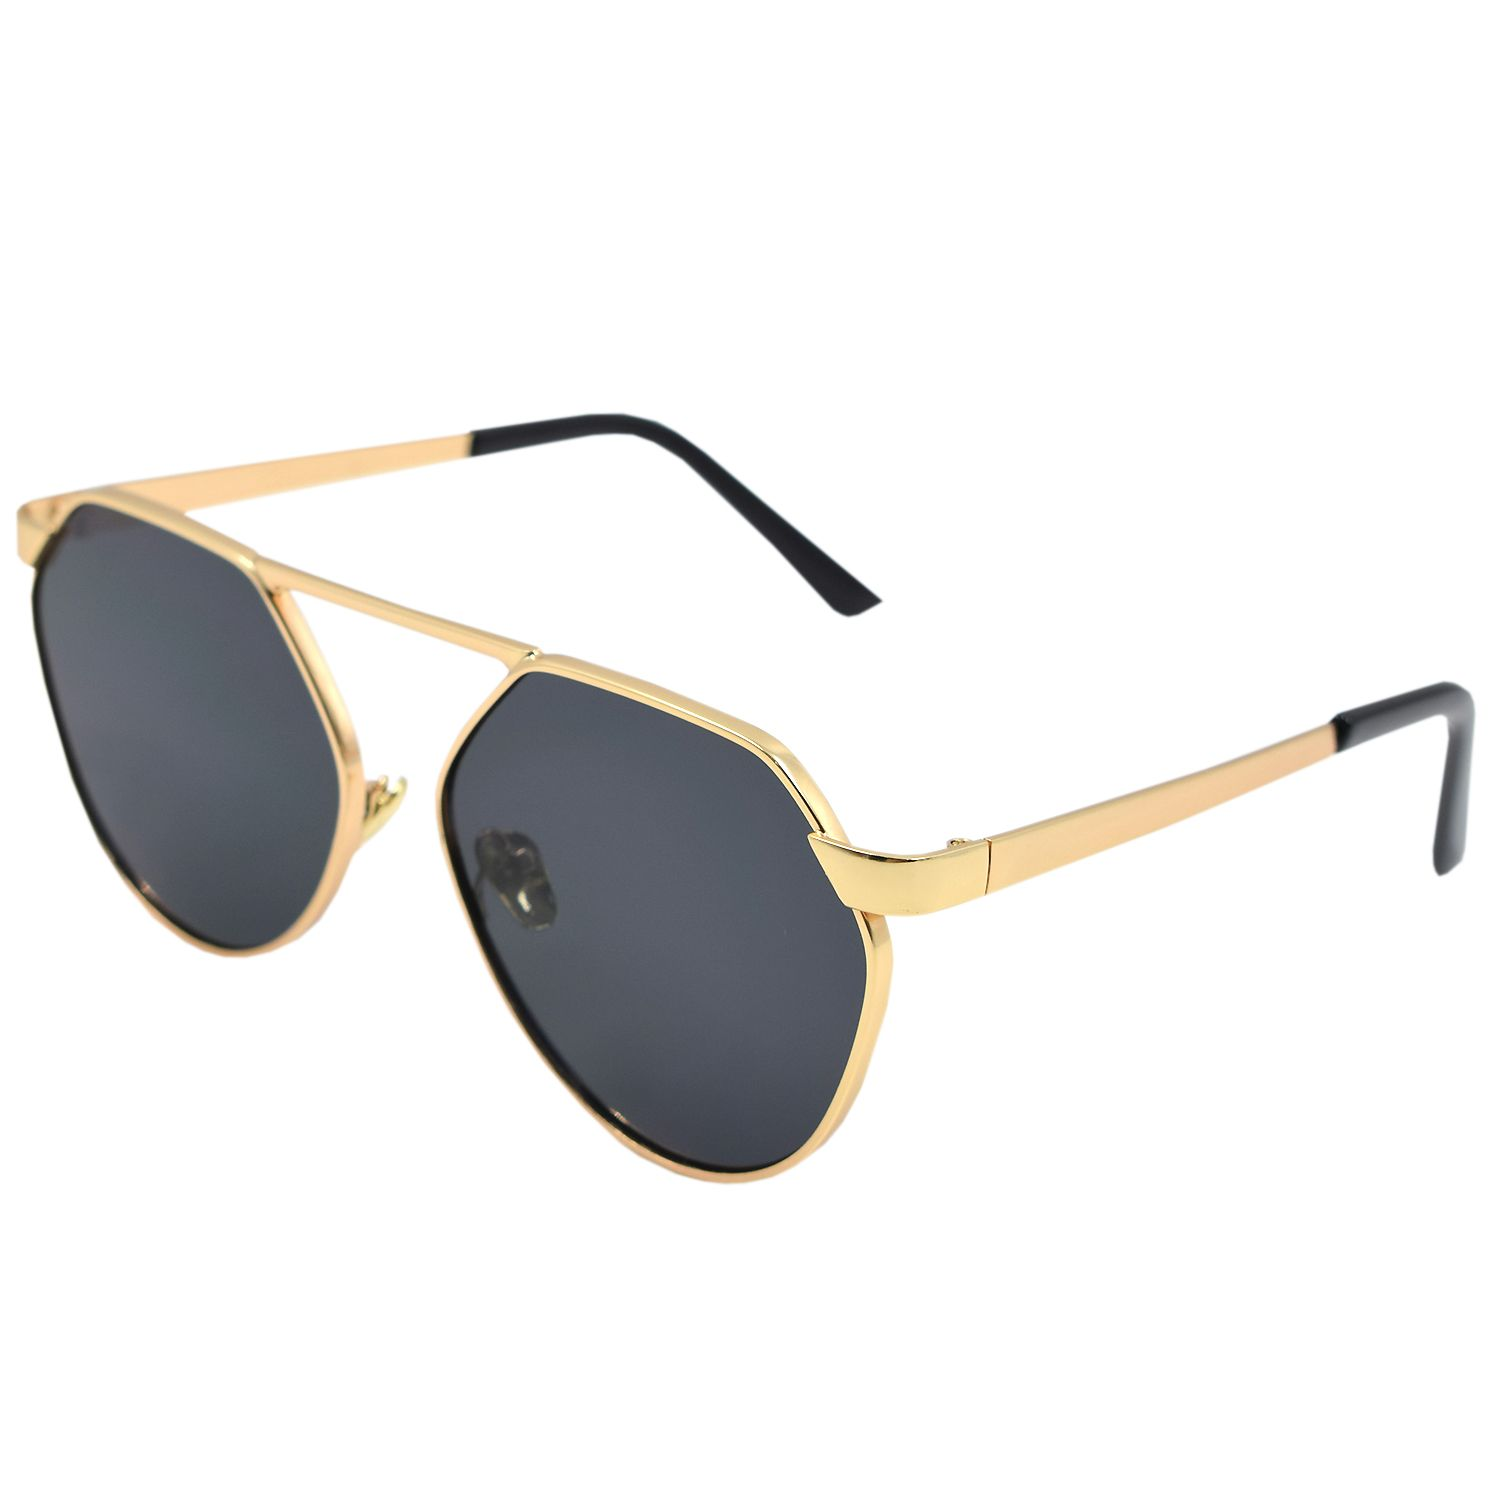 92f8dec85e4 The sunglasses prevent harmful uva and uvb rays. you can wear it as a  fashionable decoration